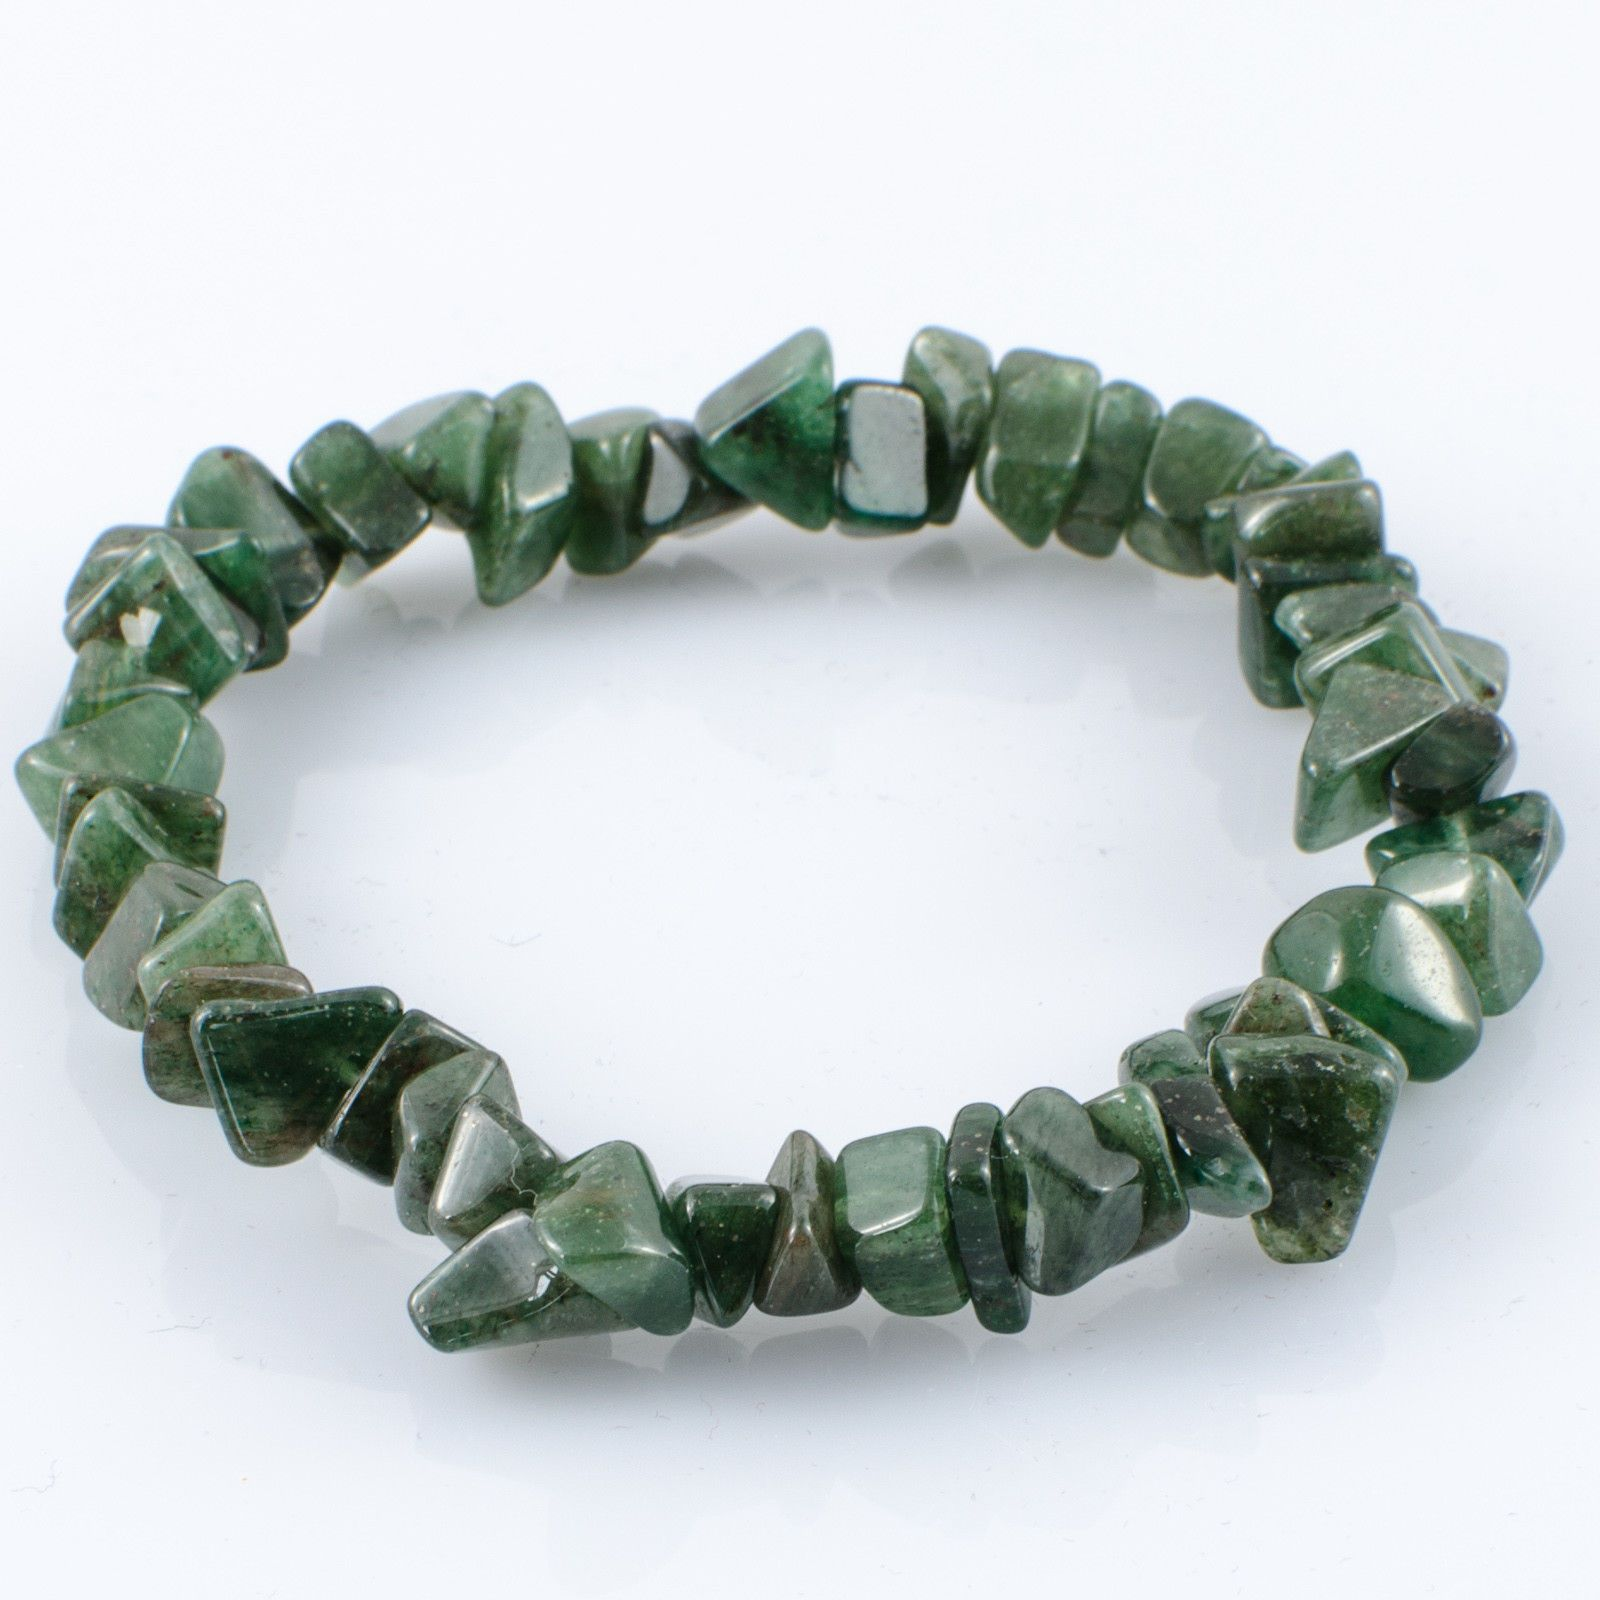 Charmed Aventurine Increased Luck Bracelet - price includes postage